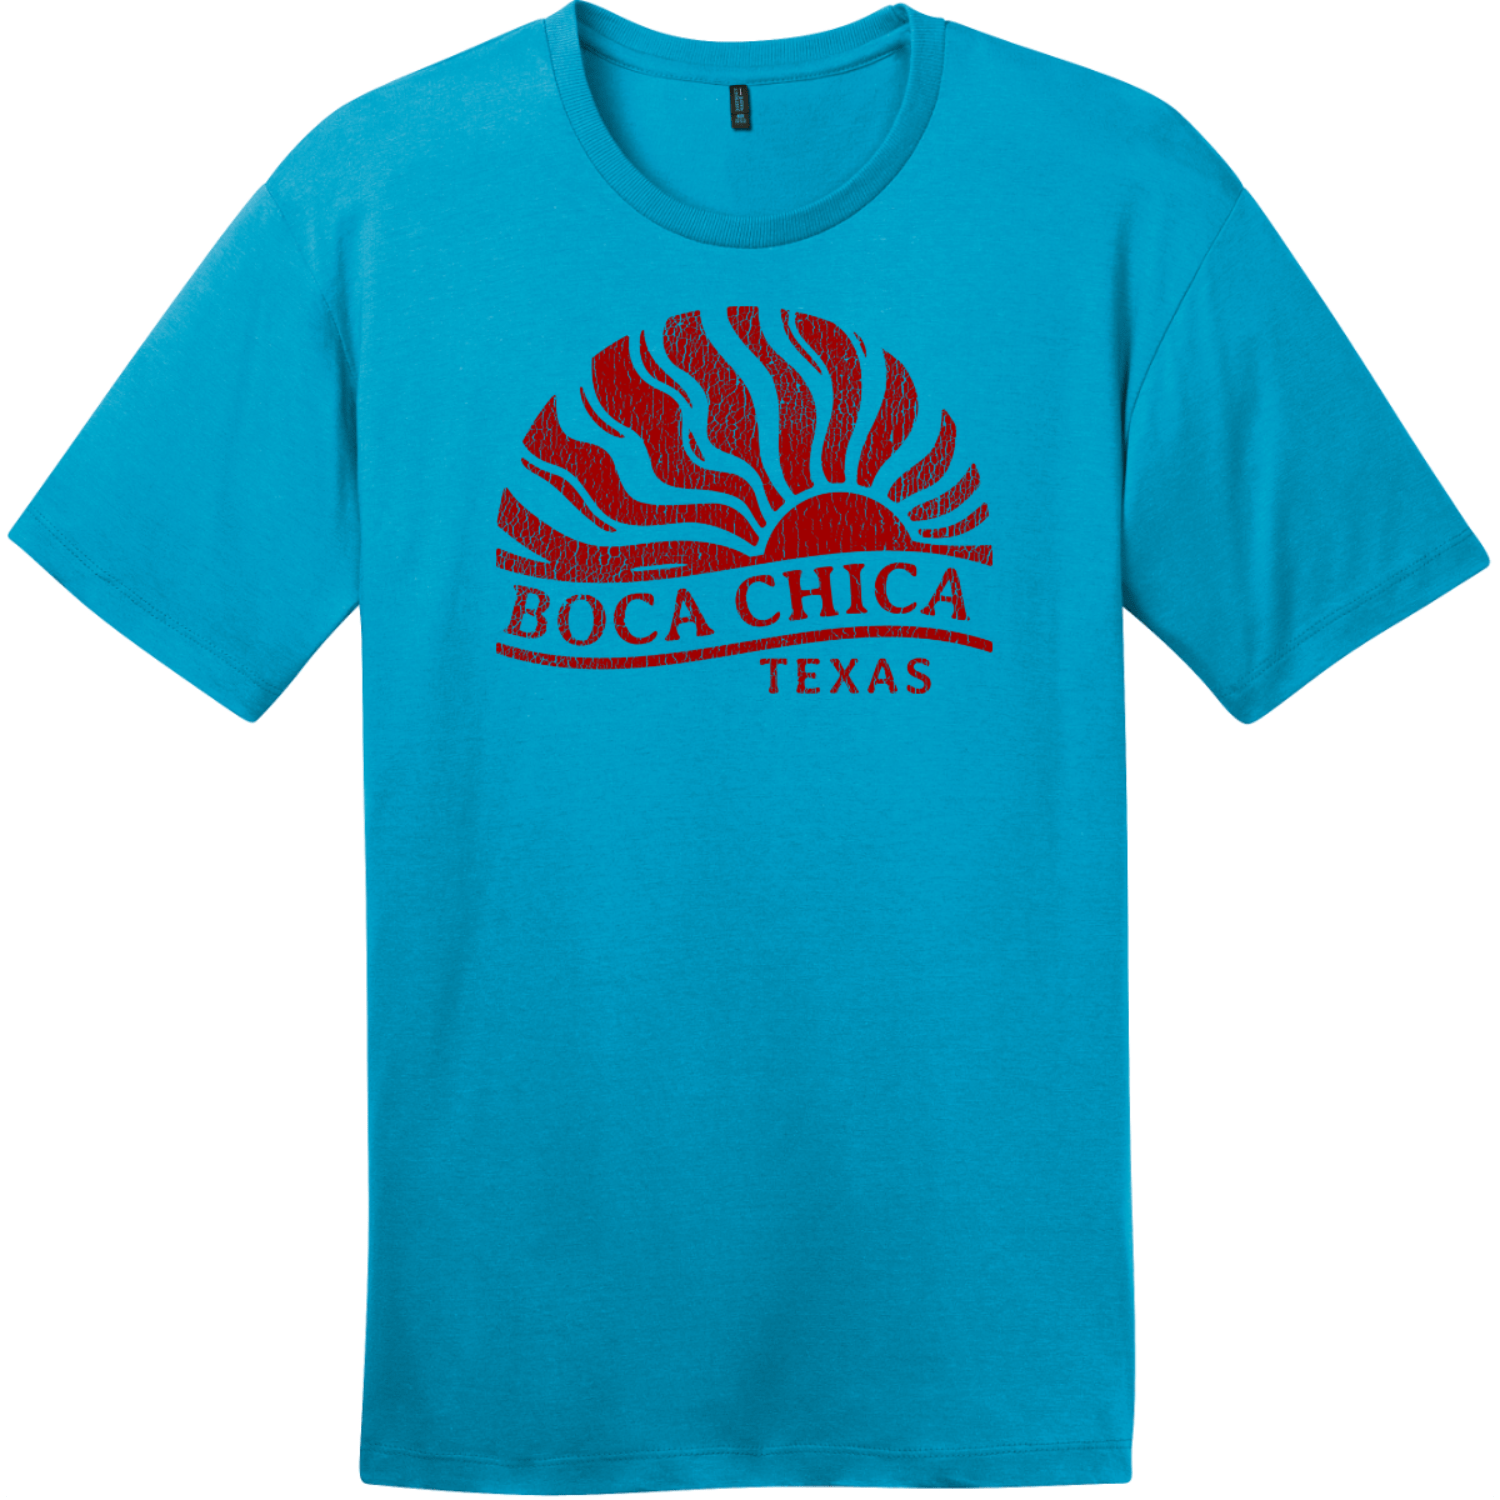 Boca Chica Texas Sun Vintage T-Shirt Bright Turquoise District Perfect Weight Tee DT104